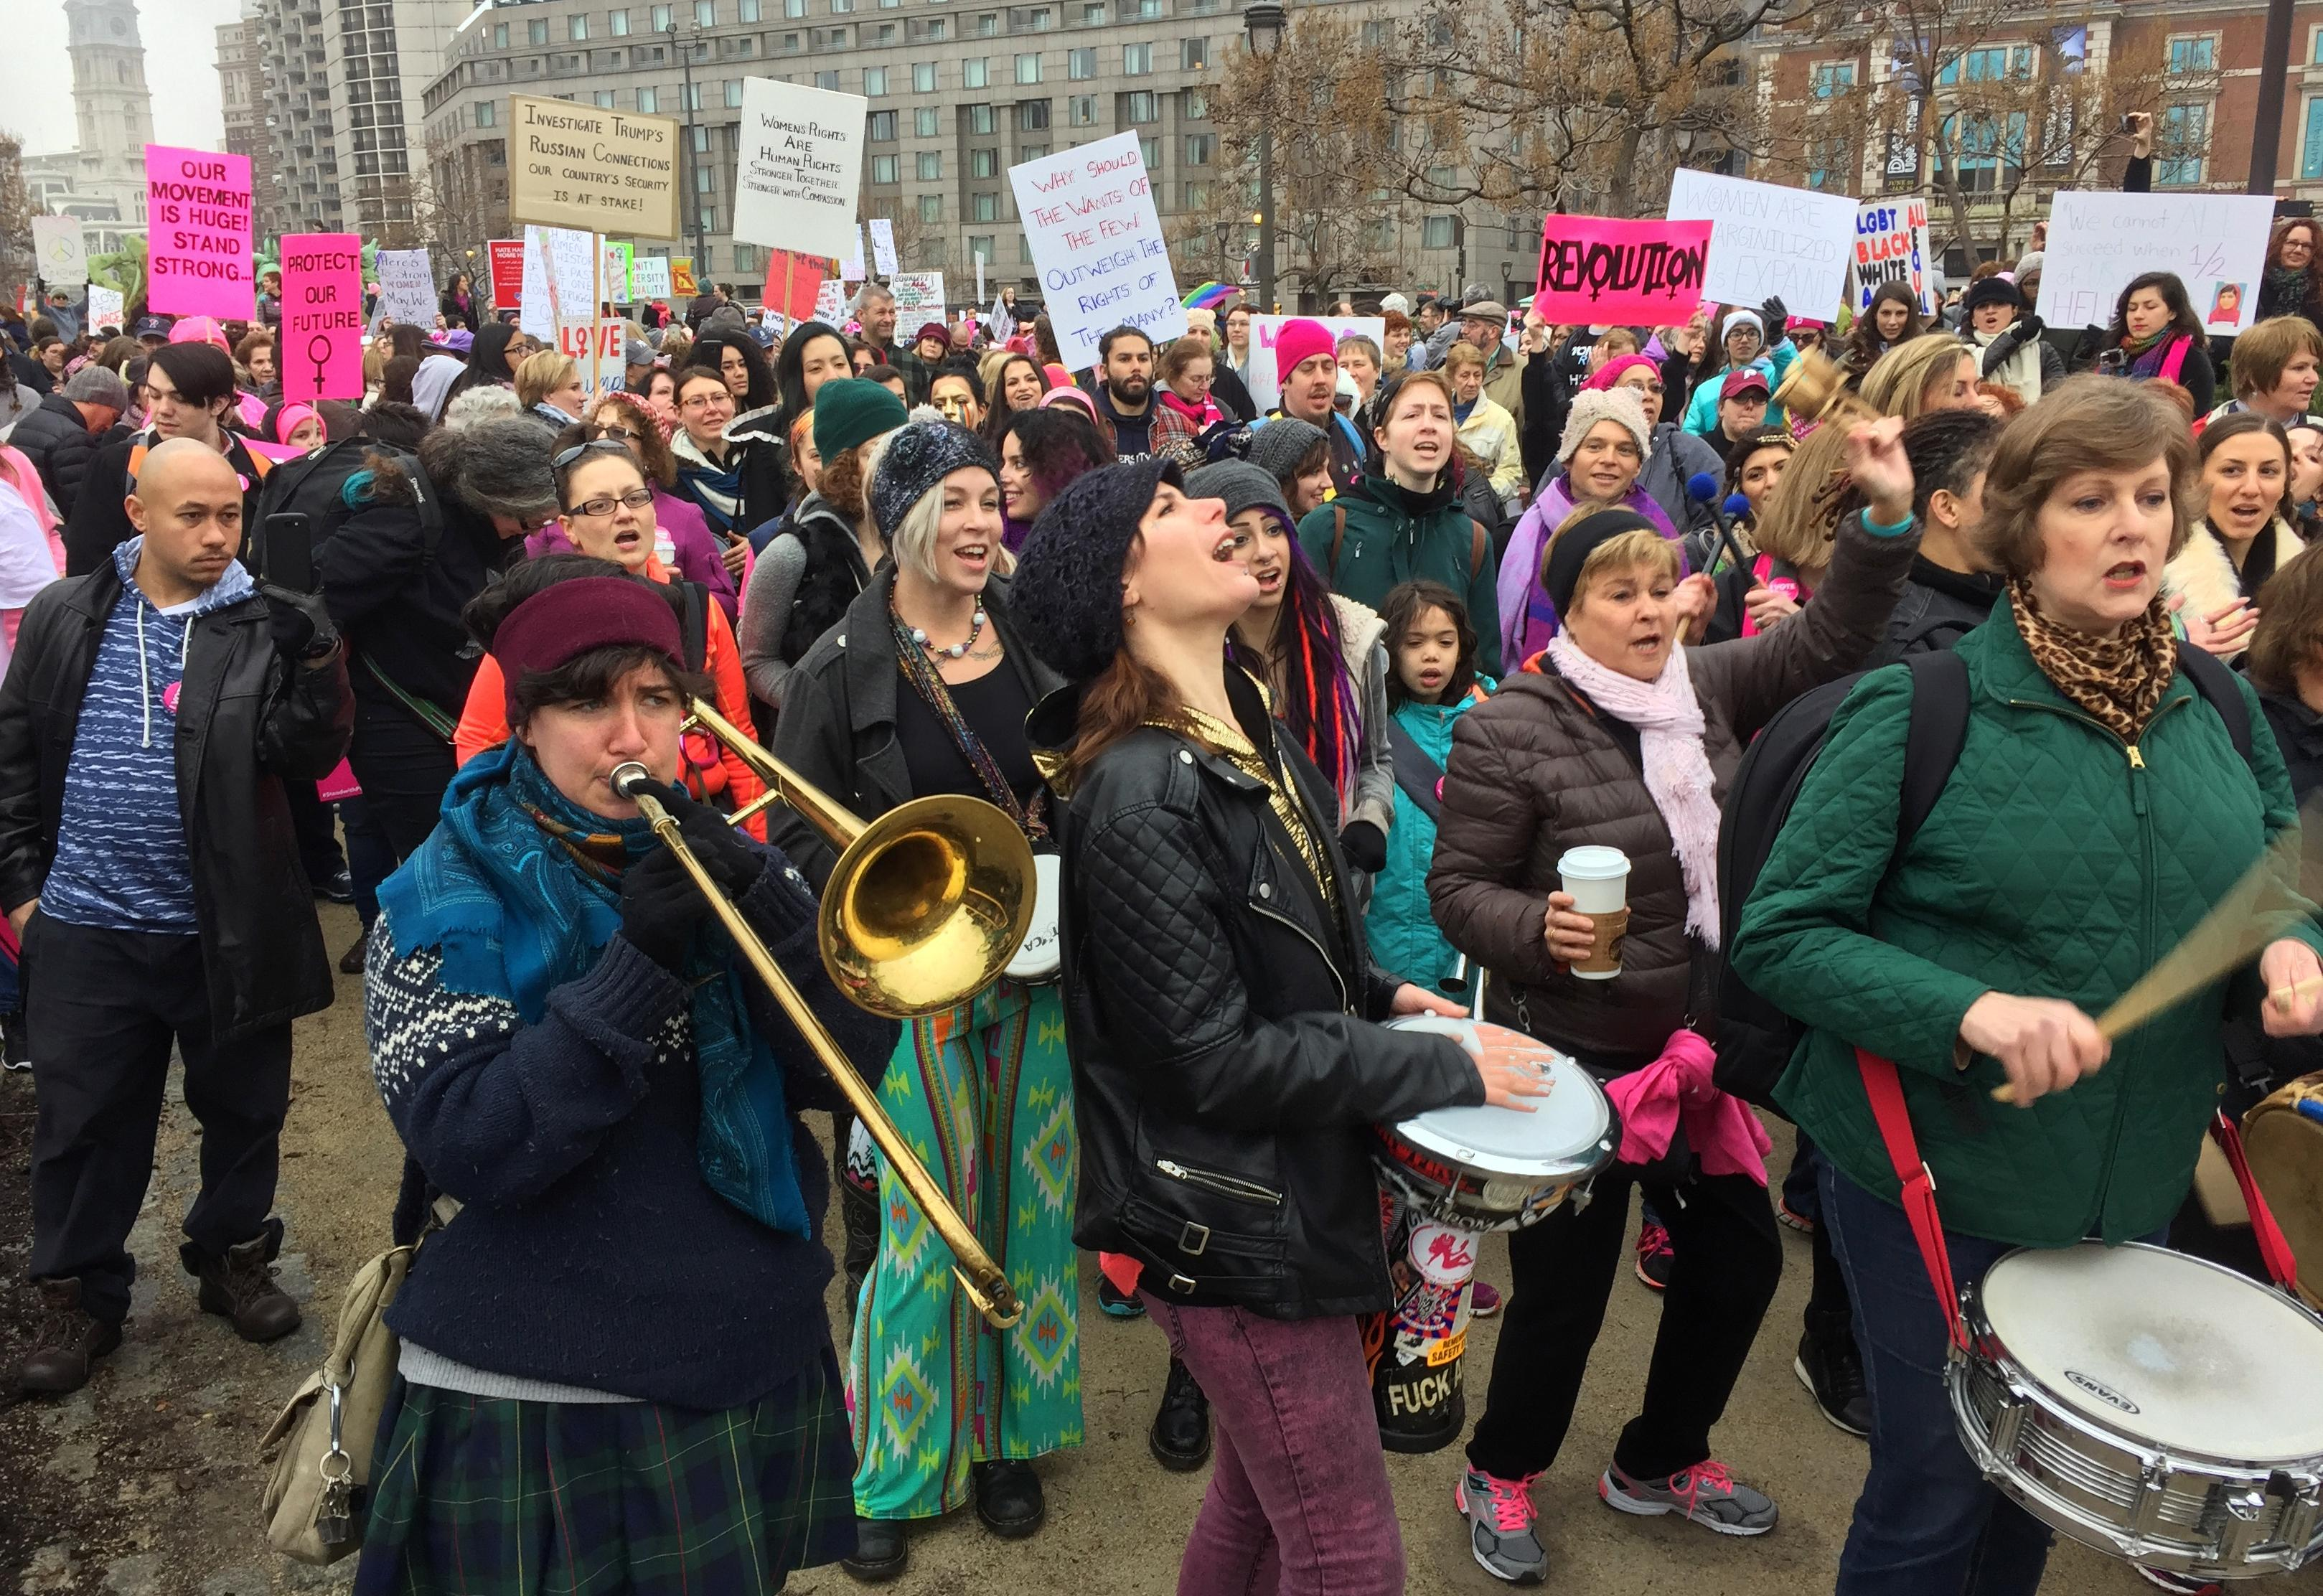 Women will continue to stand up for our rights after march new york daily news - Tens Of Thousands March For Women S Rights In Philadelphia Washington Times